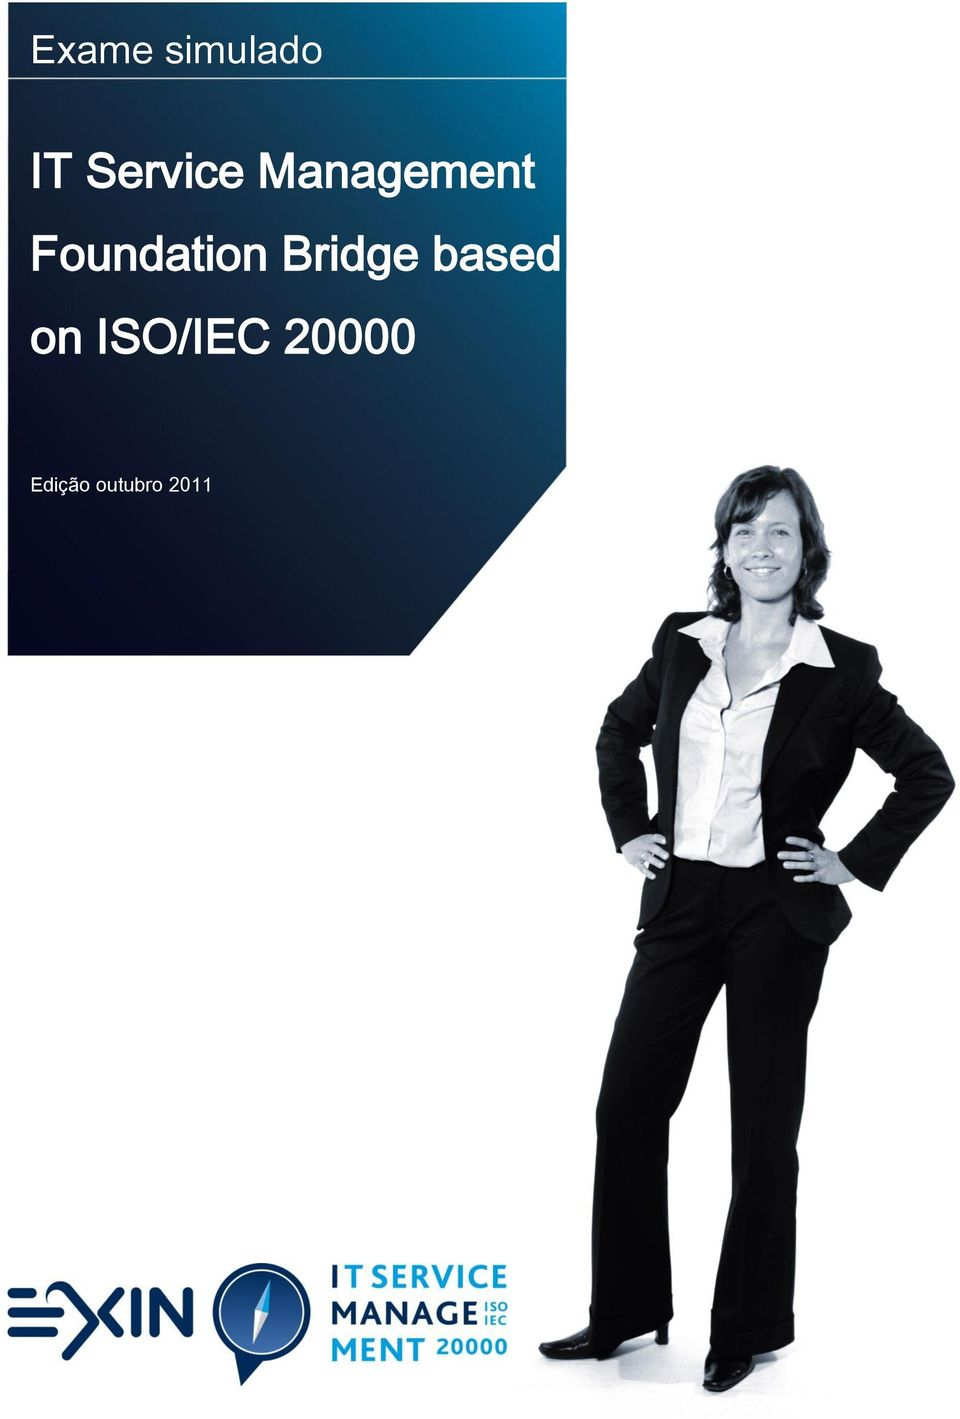 Foundation Bridge based